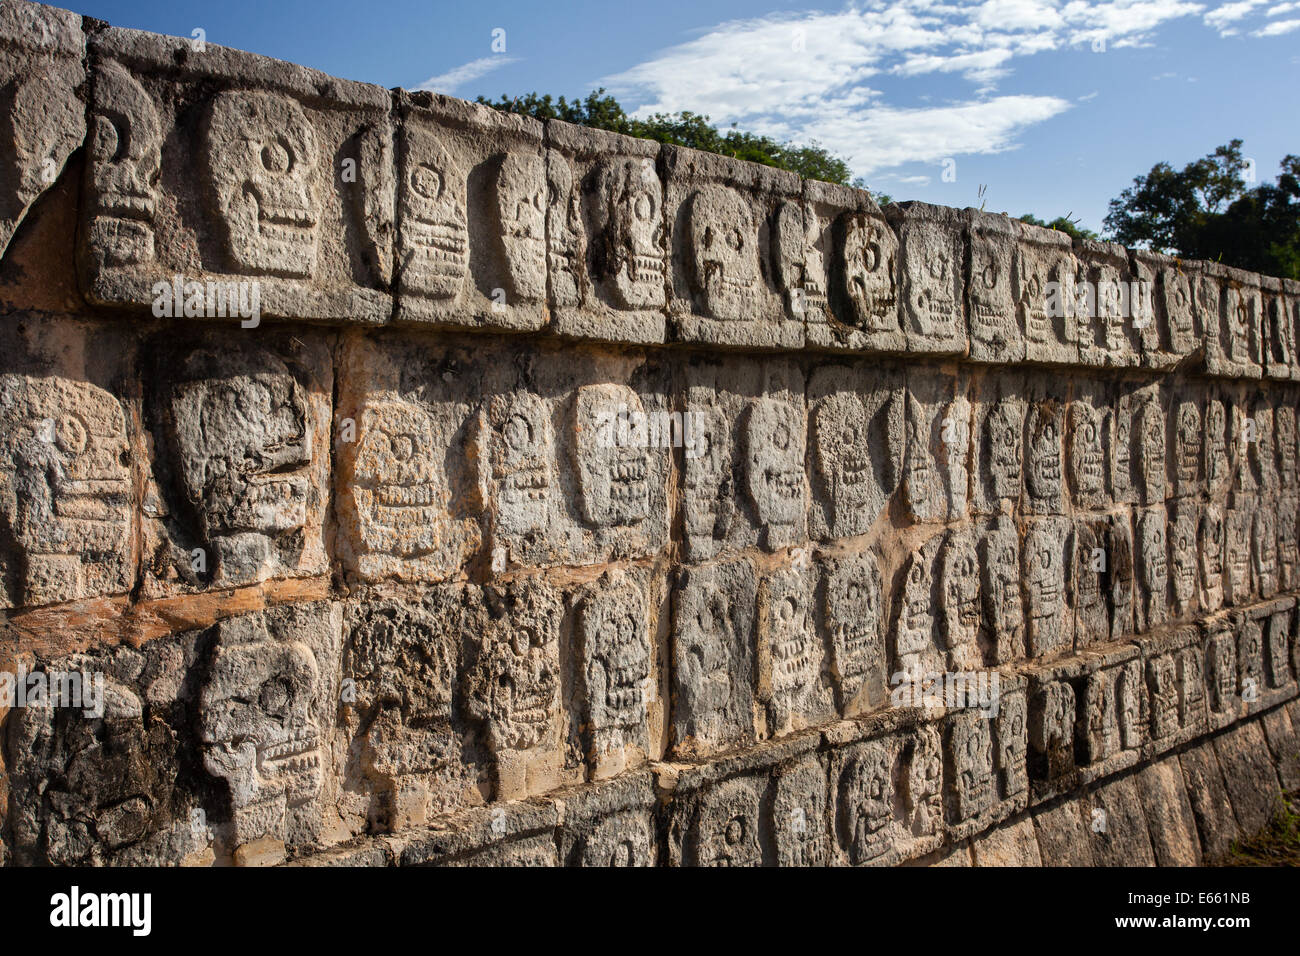 Le tzompantli, ou un mur de crânes, à Chichen Itza-, Yucatan, Mexique. Photo Stock